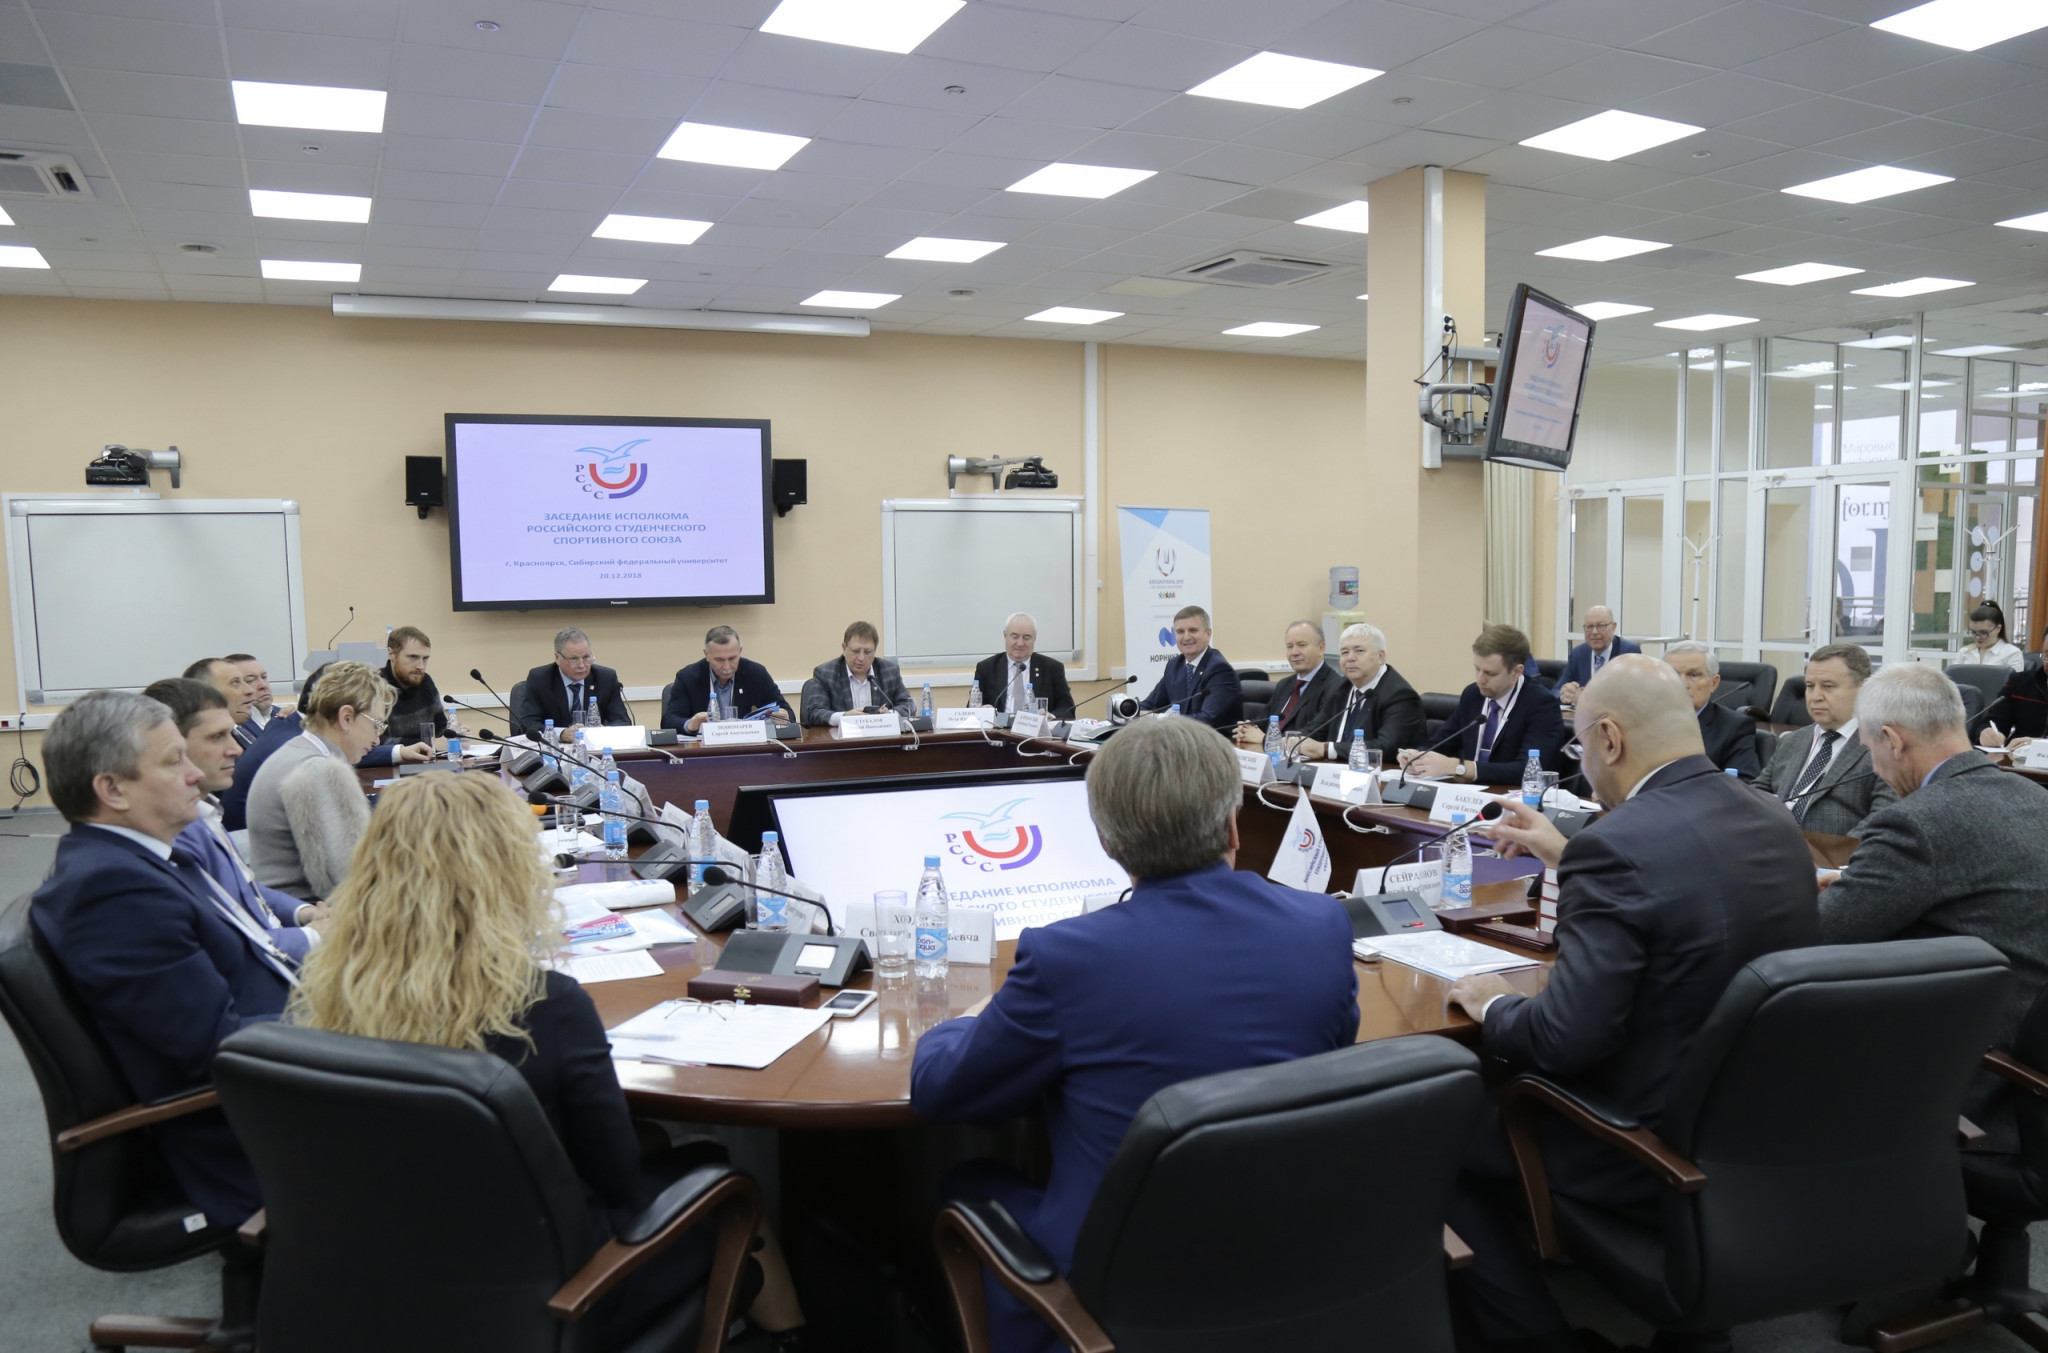 Krasnoyarsk 2019 preparations on course, head of Universiade directorate declares as final countdown begins